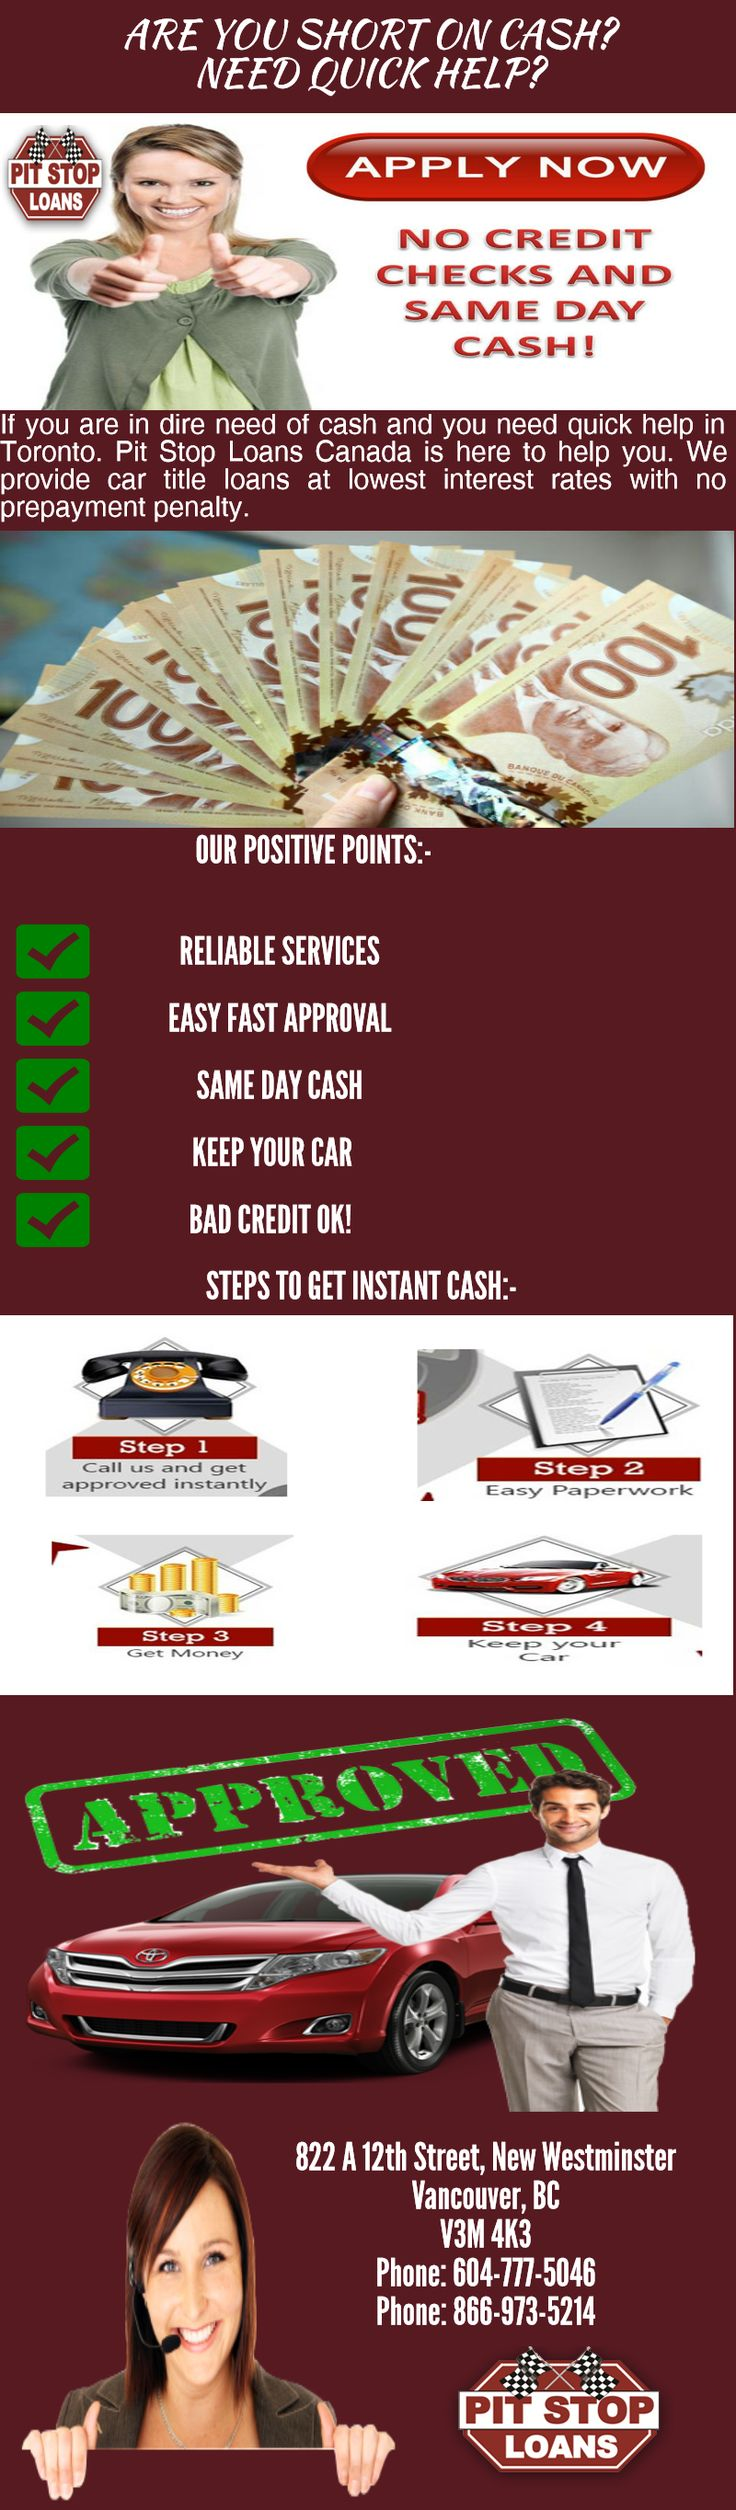 Get quick and instant approval on your car title loans in Toronto with Pit Stop Loans Canada. We offer title loans at lowest interest rates with no prepayment penalty. For more information visit http://www.pitstoploans.com/car-title-loans-toronto-great-option-for-emergency-cash